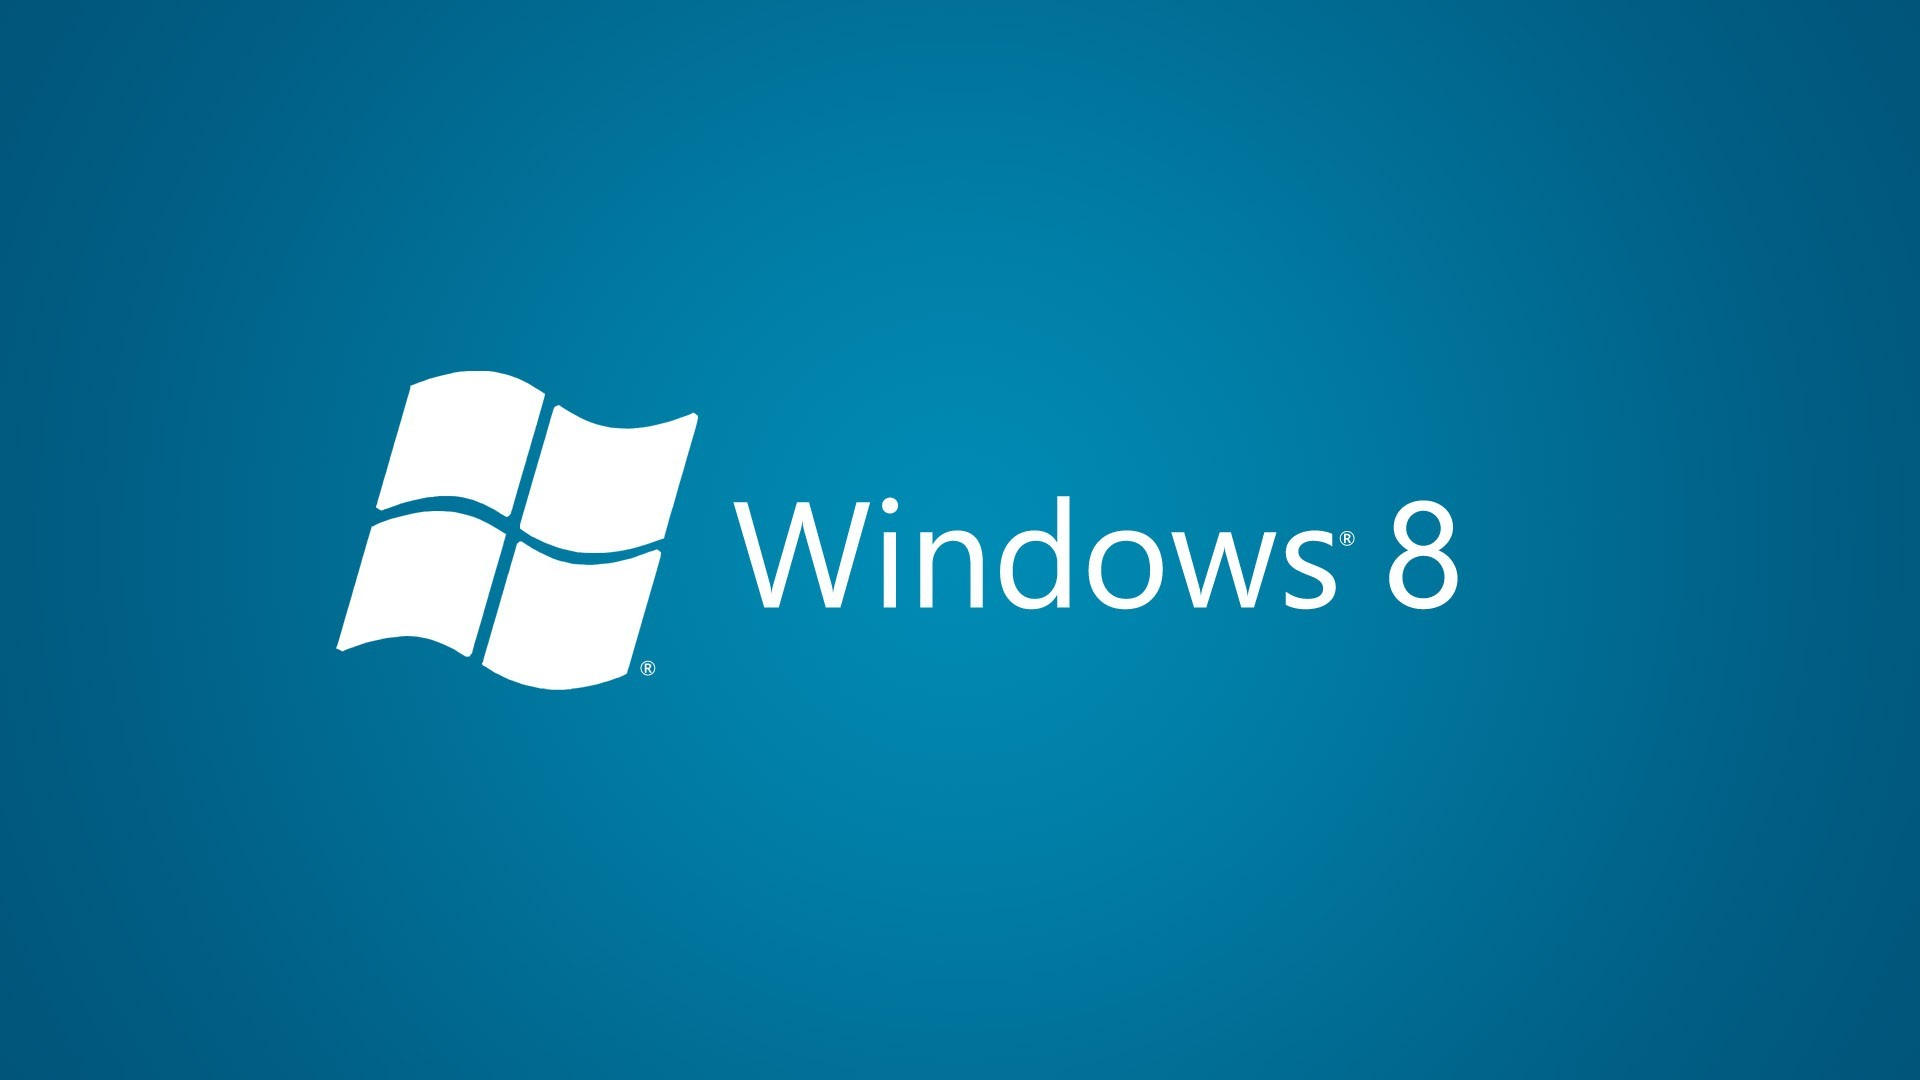 microsoft windows 8 wallpaper | allwallpaper.in #9452 | pc | en